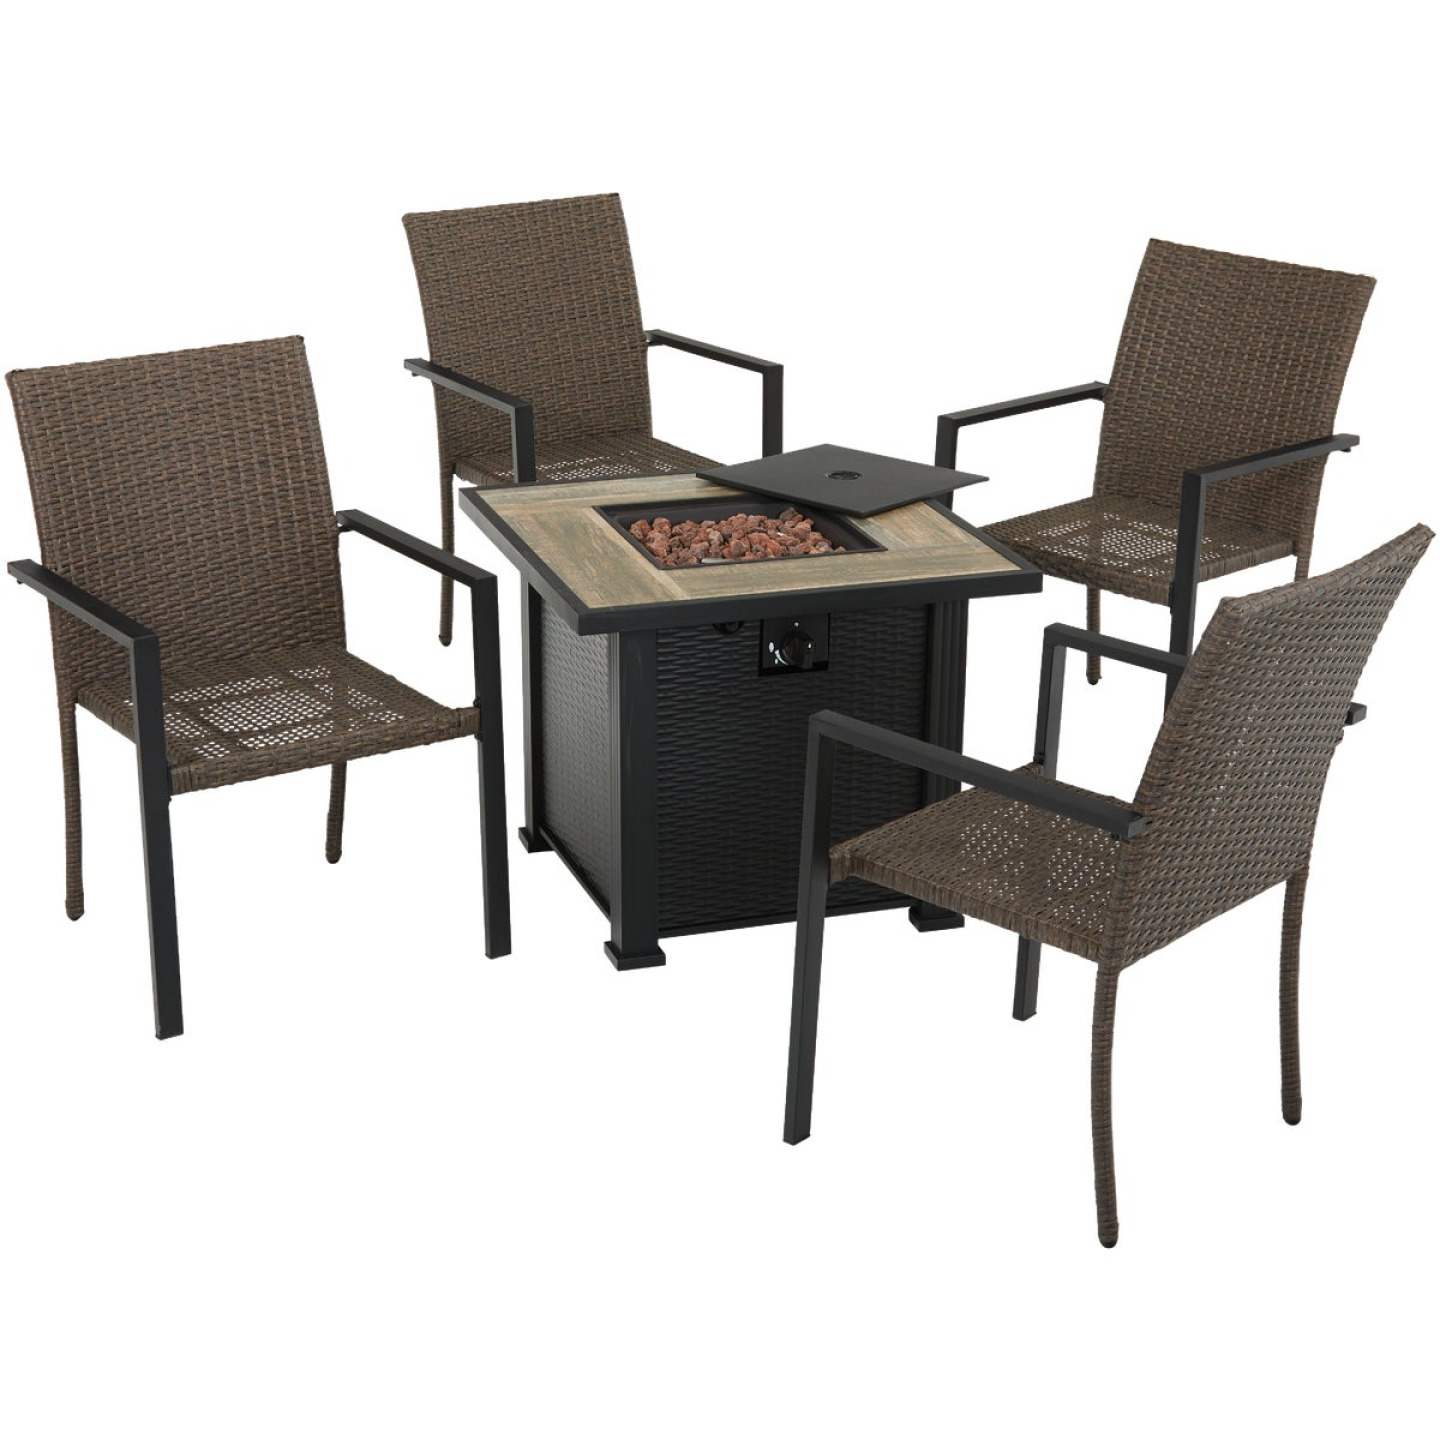 Leisure Classics Madrid 5-Piece Fire Table Chat Set Image 1